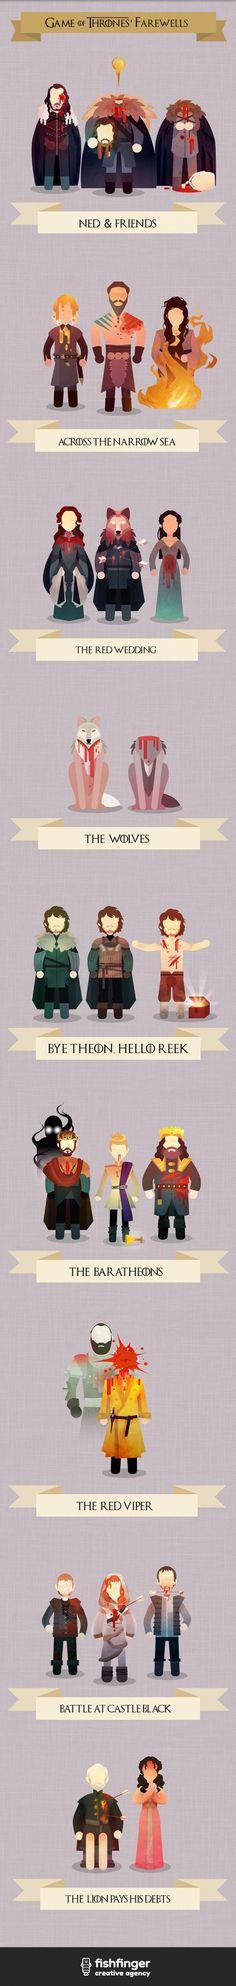 Game of Thrones Deaths, Illustrated